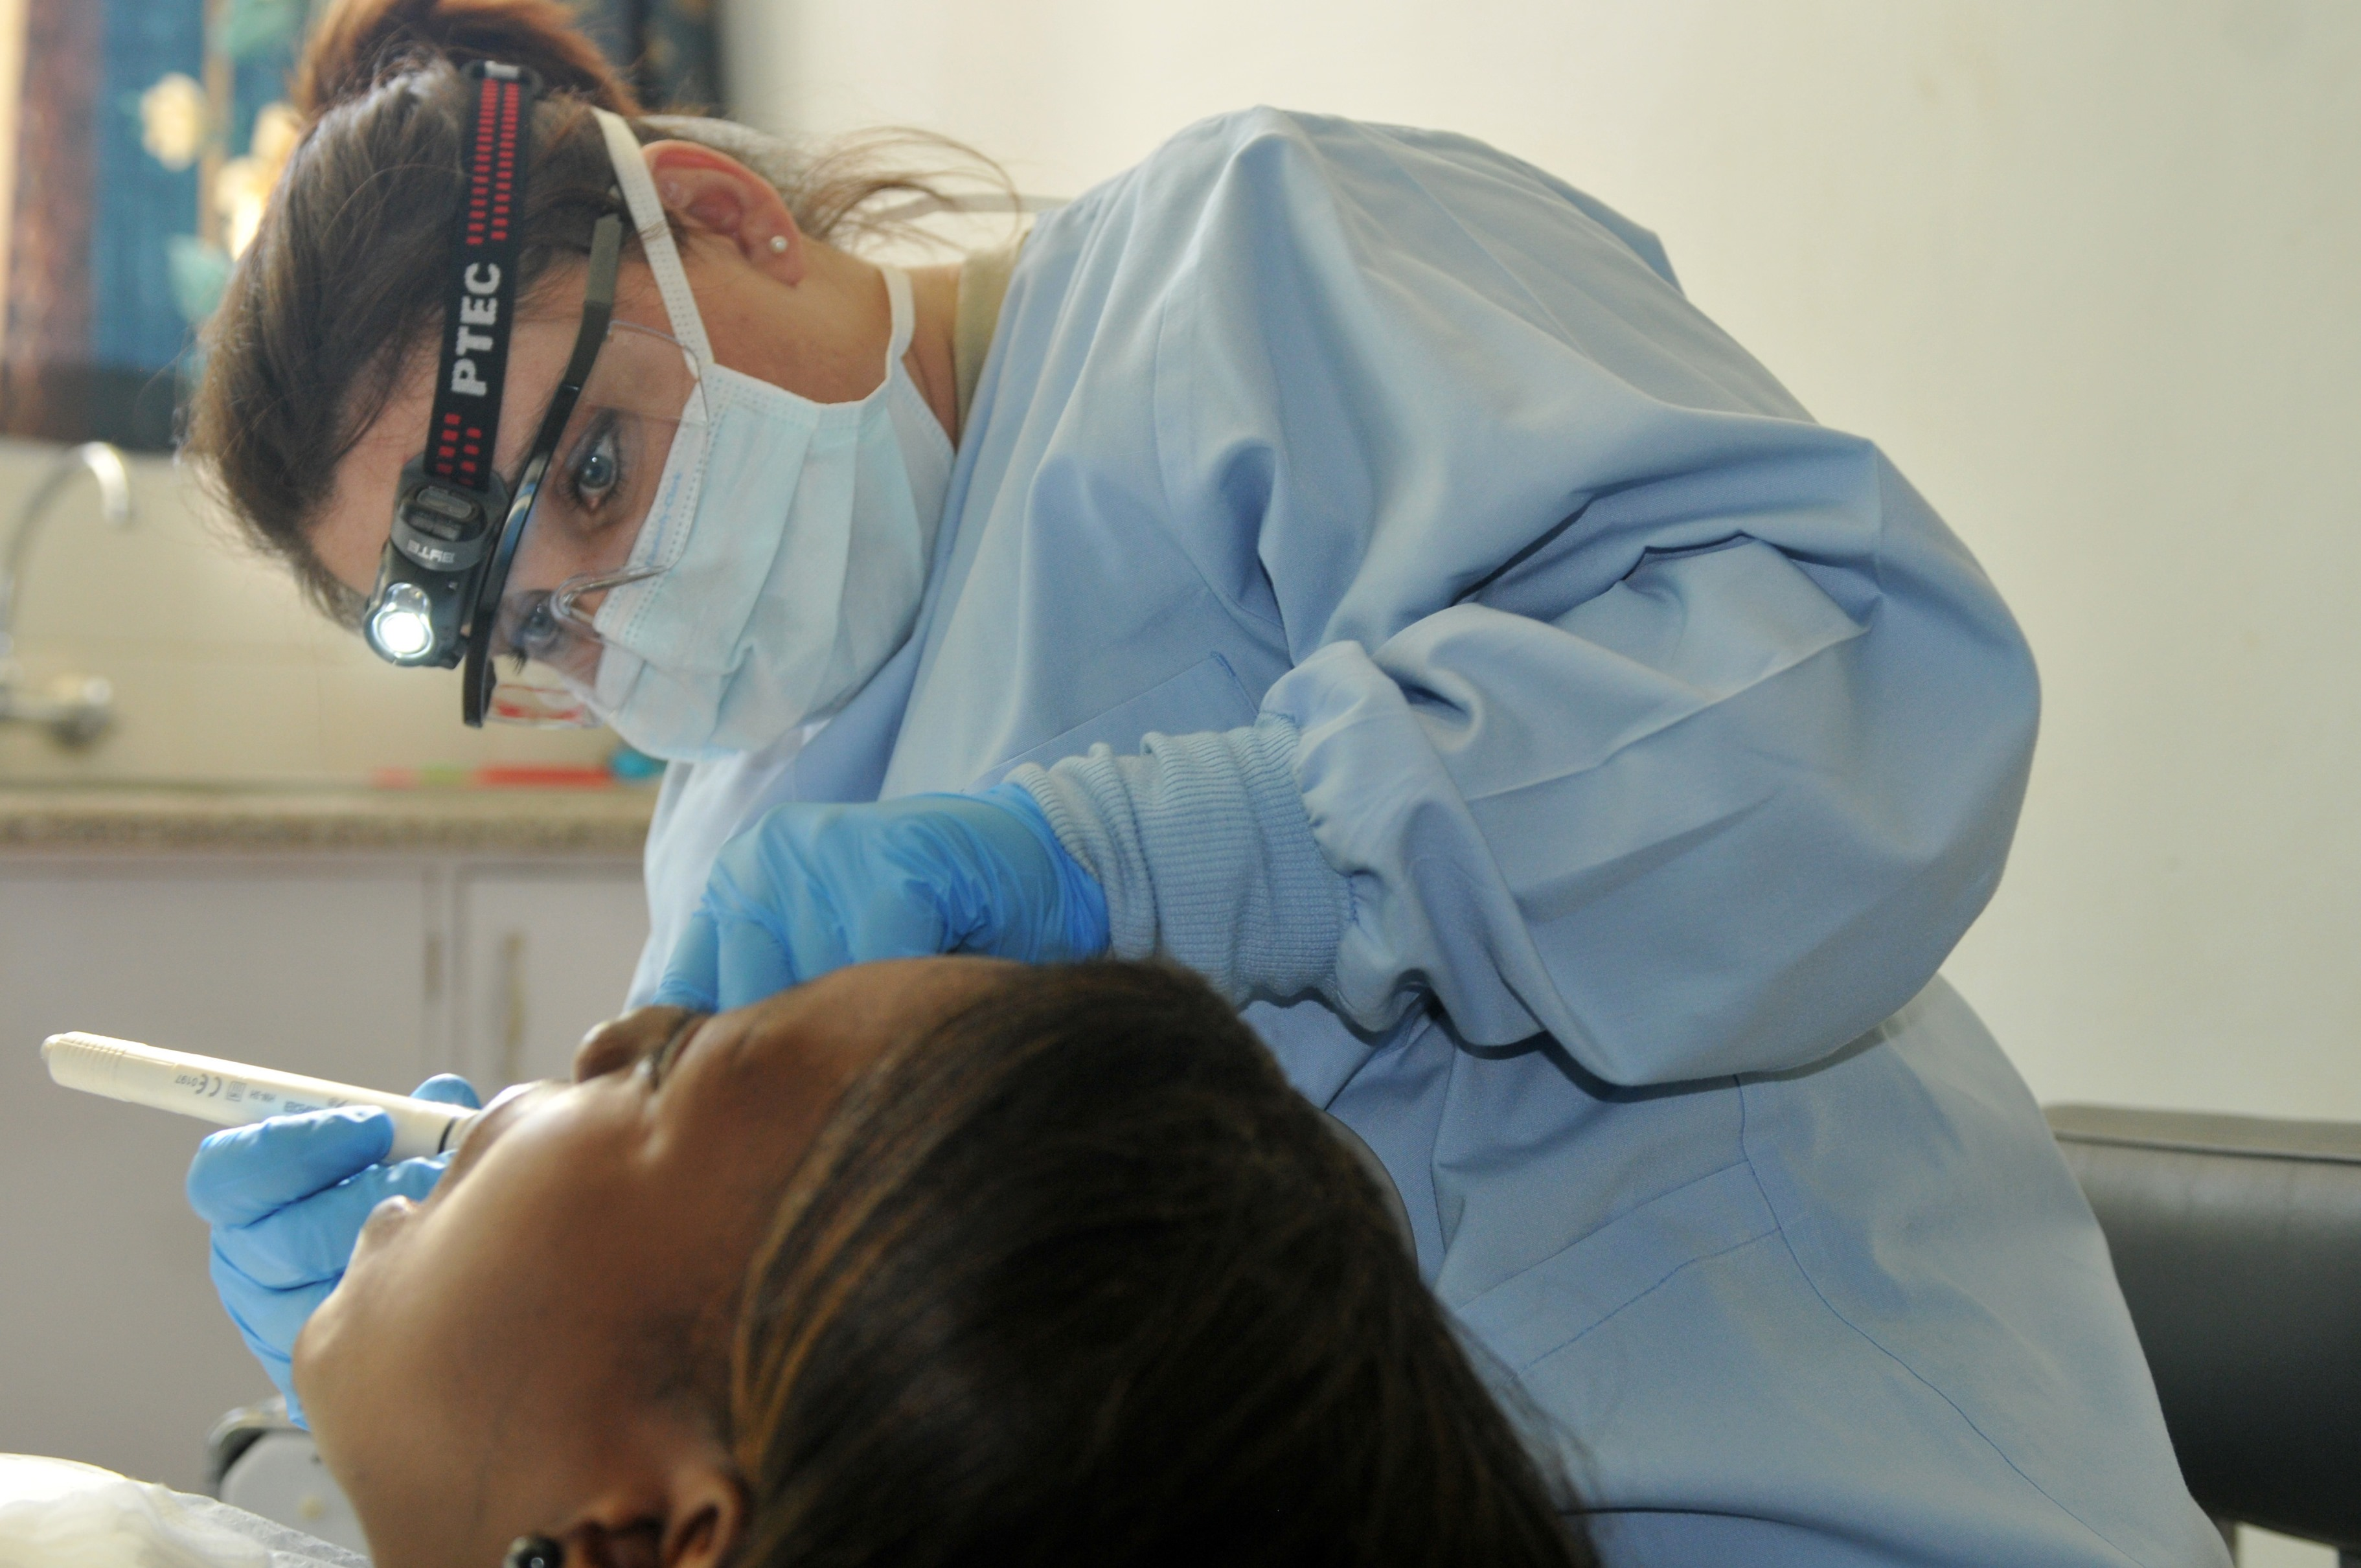 We provide high quality dental care in Chatswood